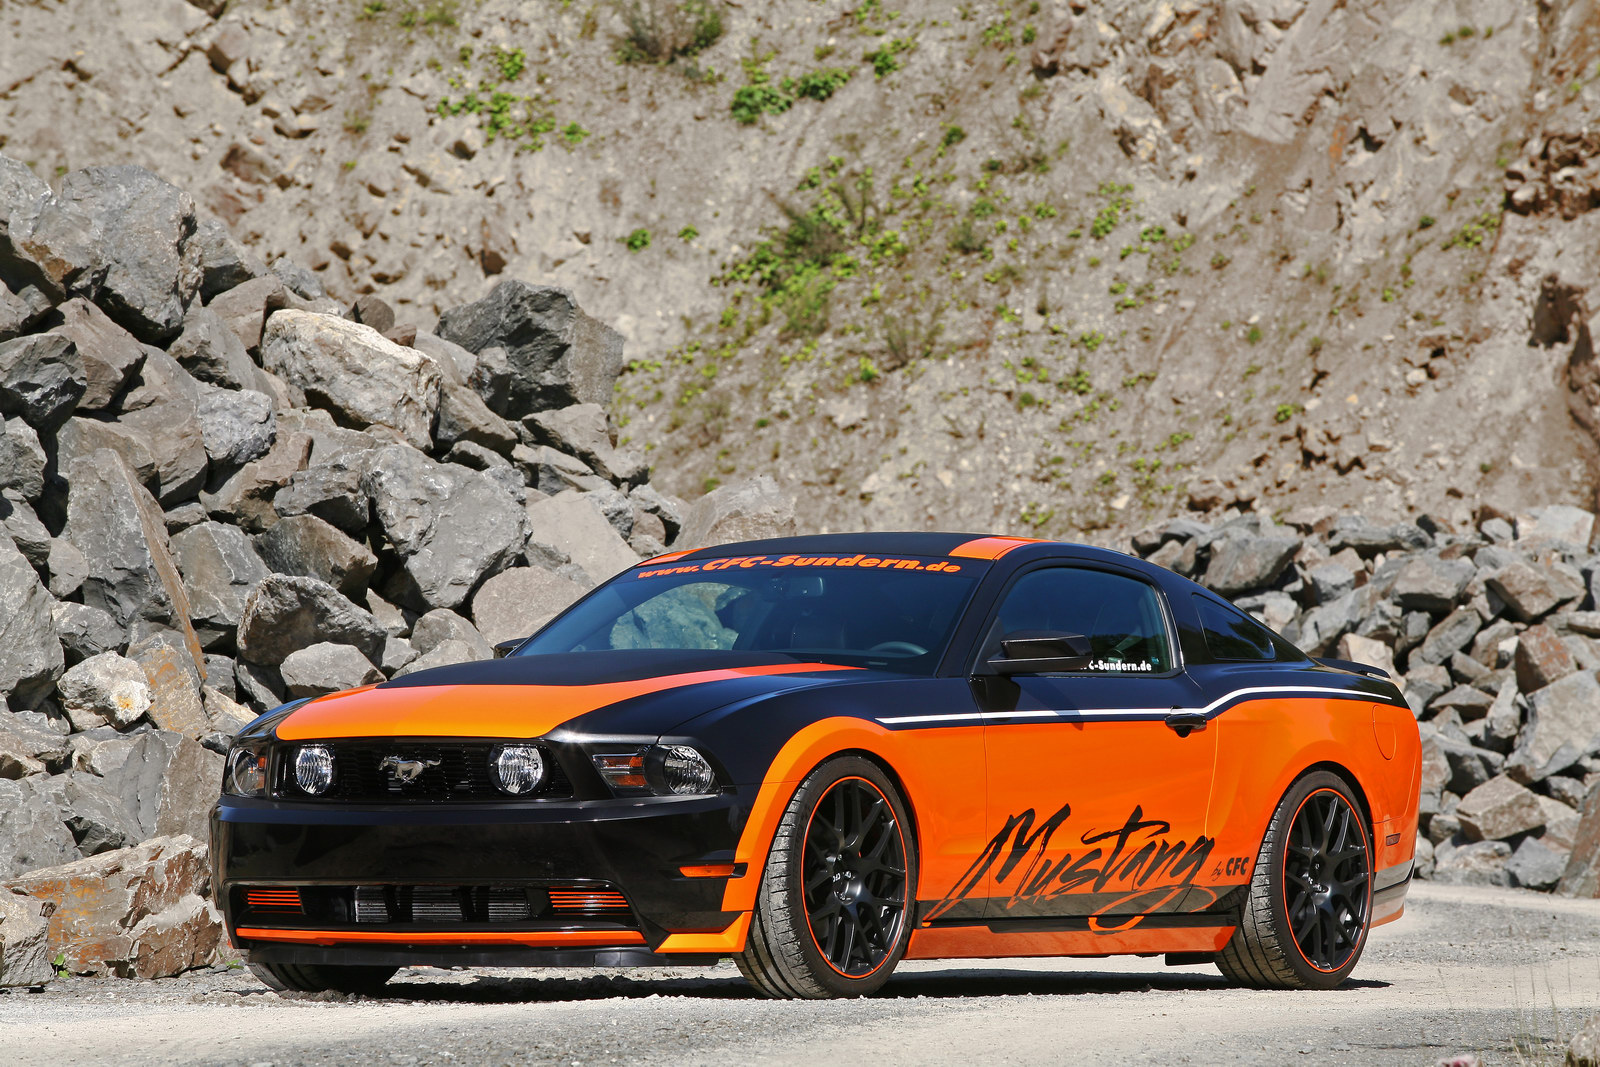 Němci z Design World upravili Ford Mustang GT 11